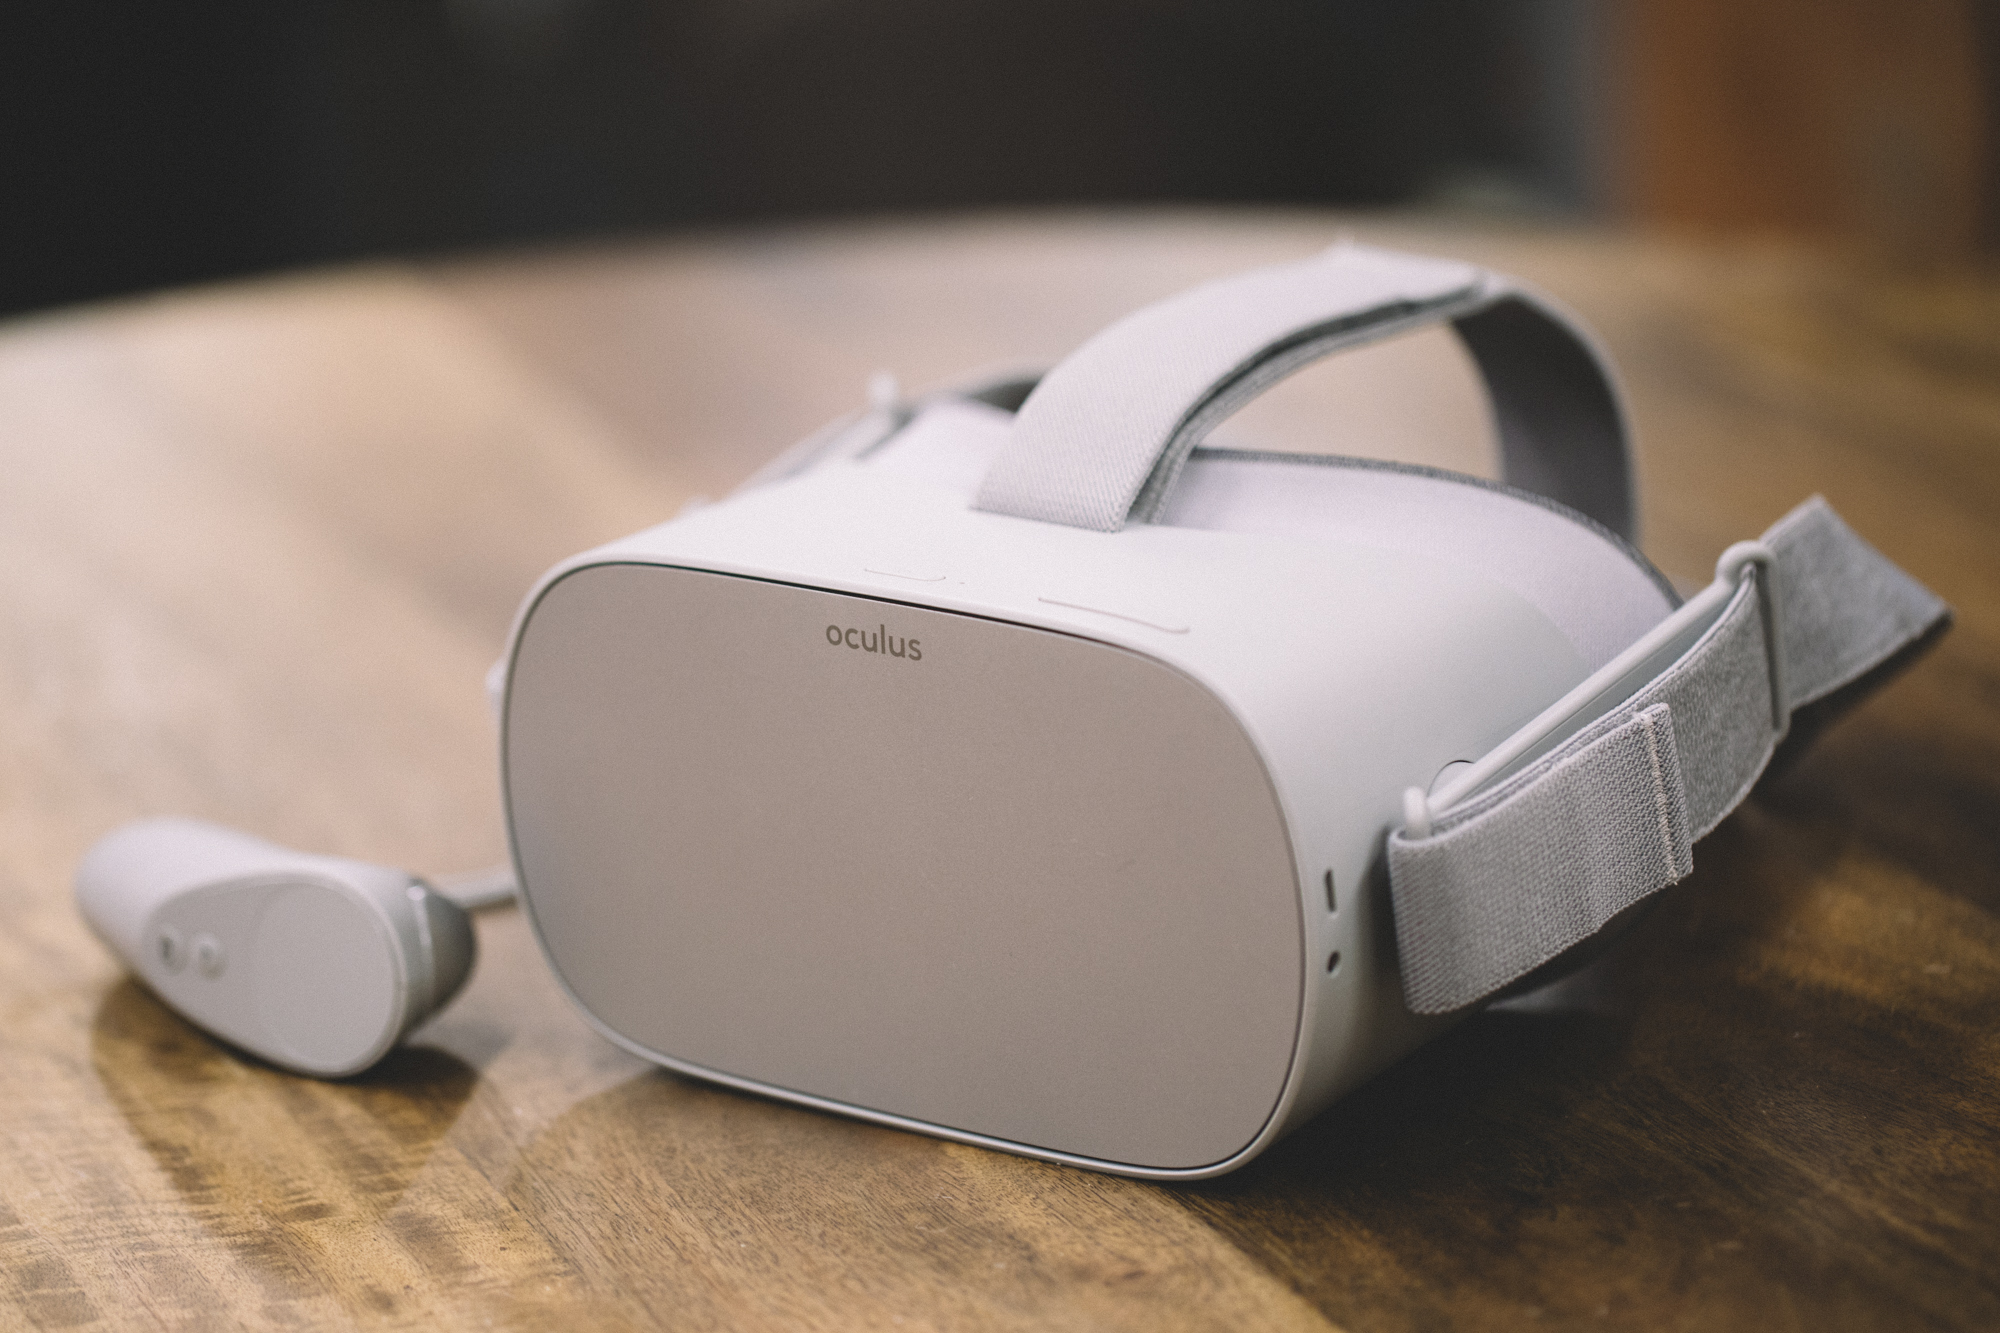 $199 Oculus Go VR headset goes on sale today – TechCrunch